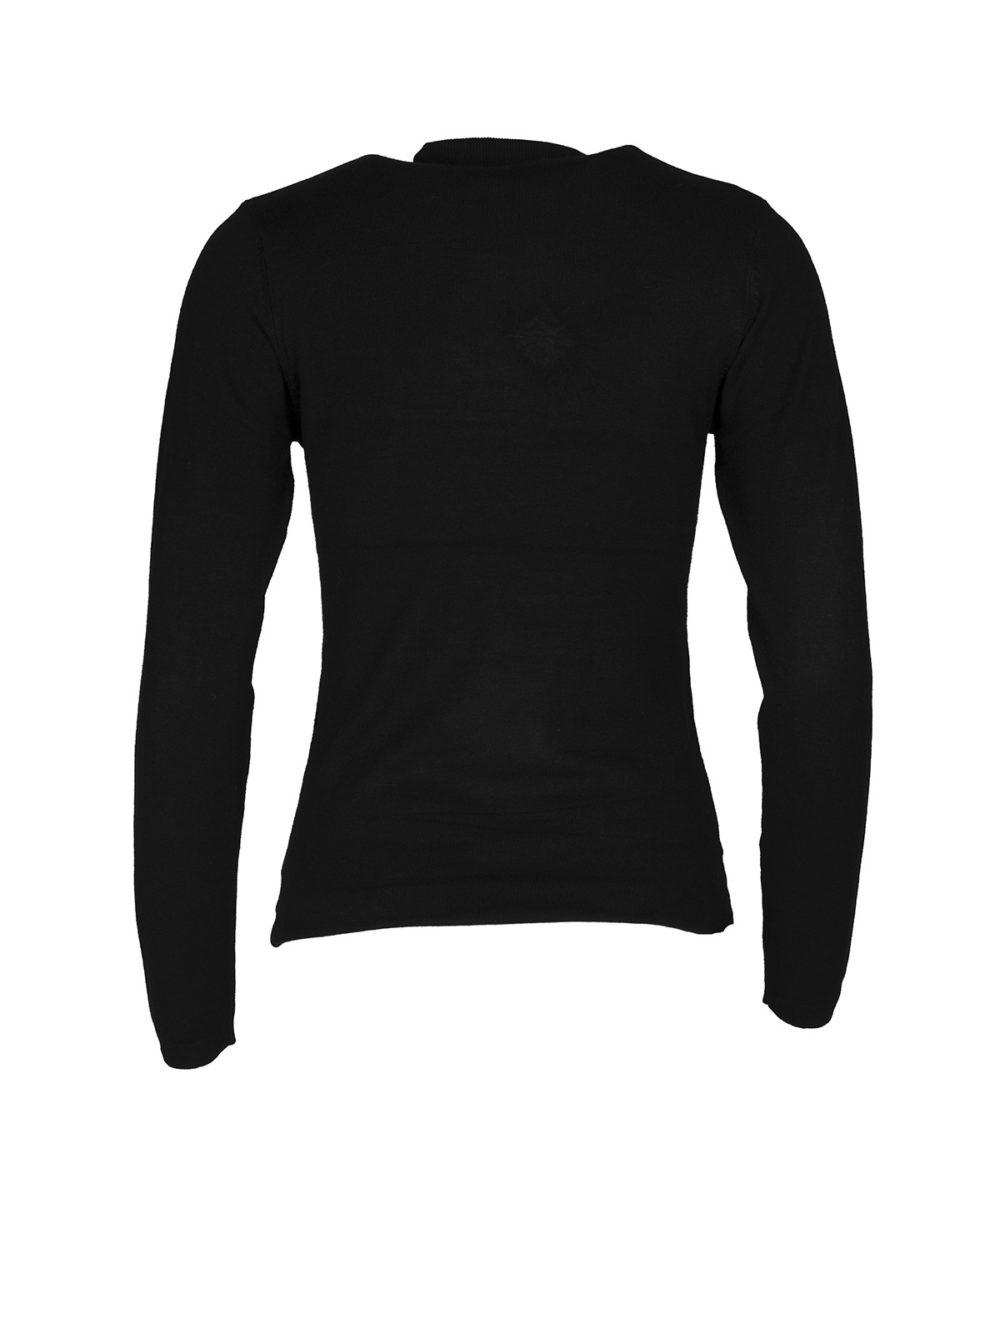 Mafa Jumper ICHI Katie Kerr Women's clothing